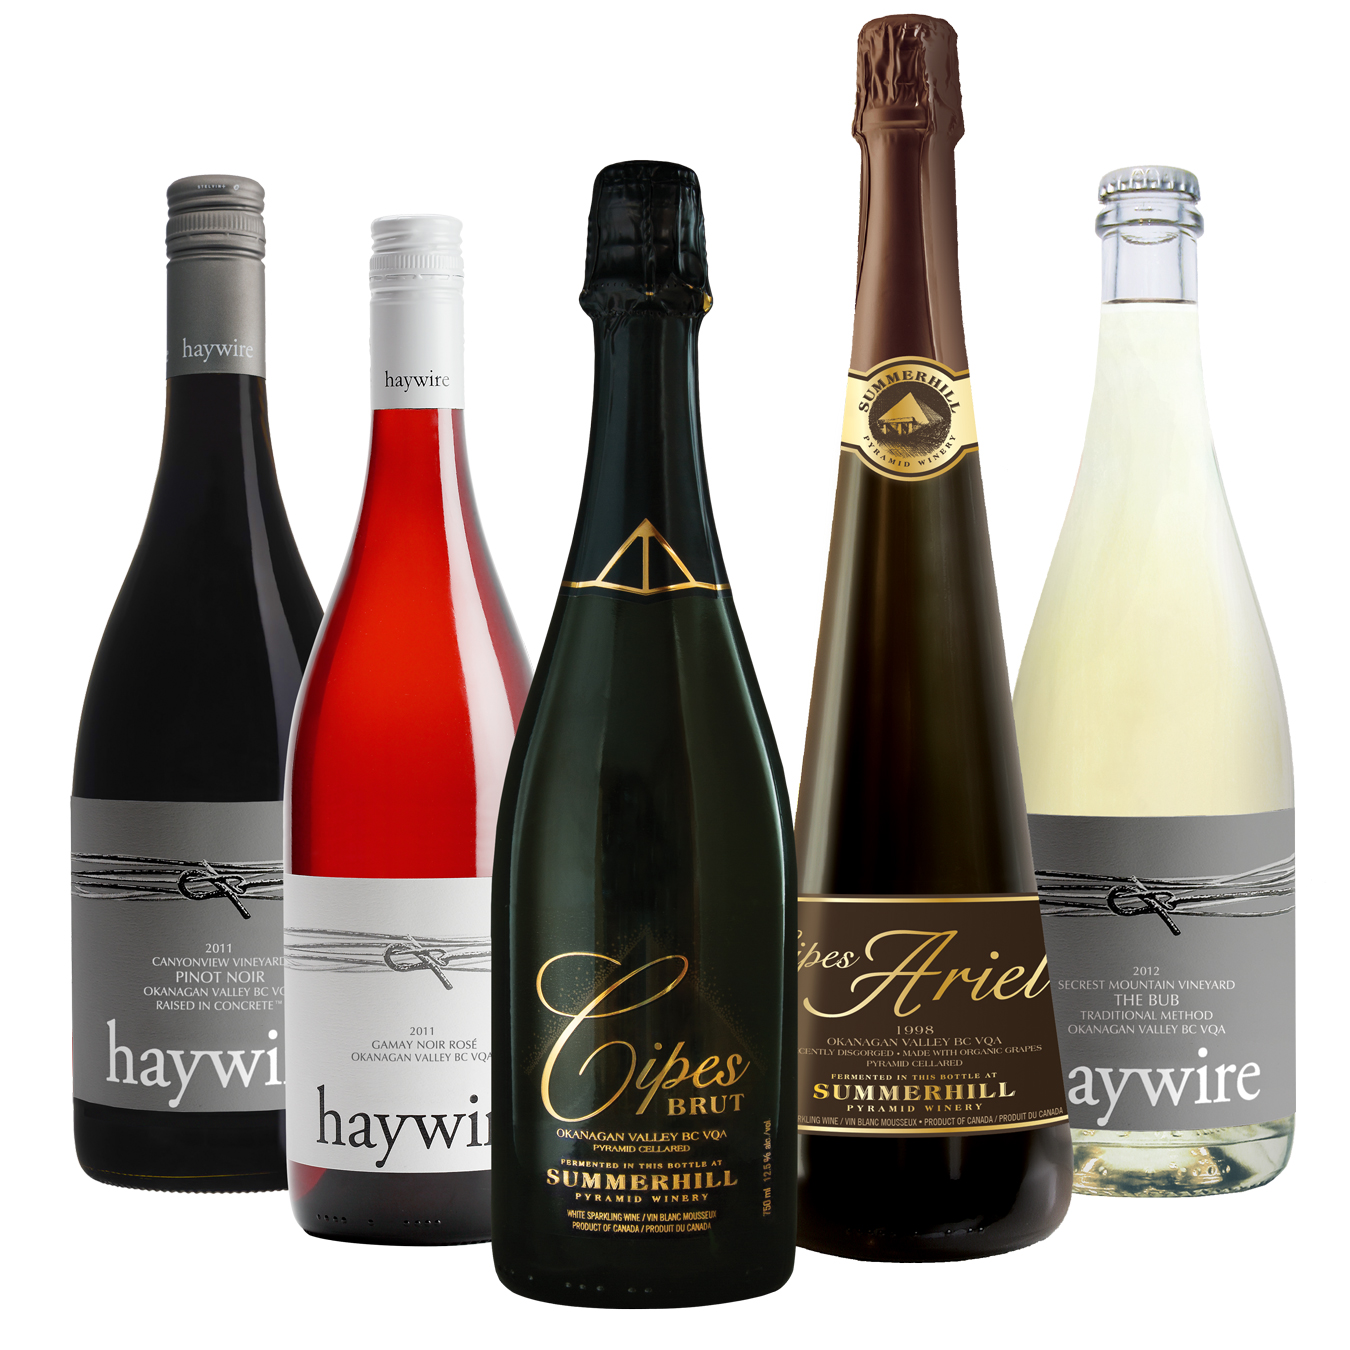 Haywire and Summerhill will showcase their wines